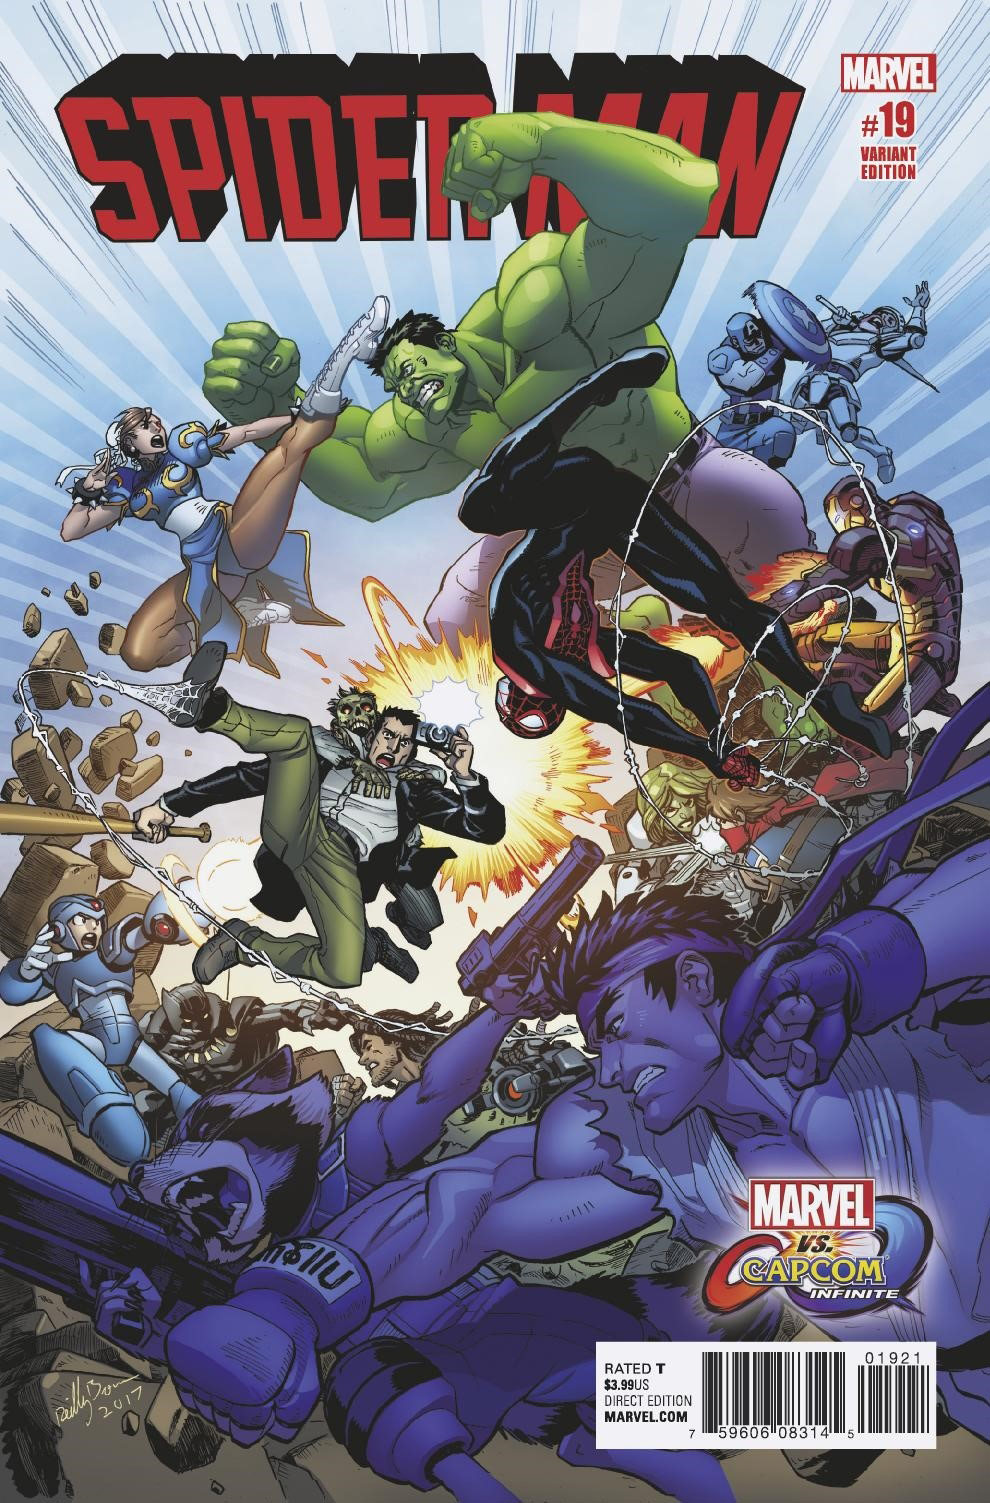 More Marvel vs. Capcom: Infinite variant covers 2 out of 5 image gallery